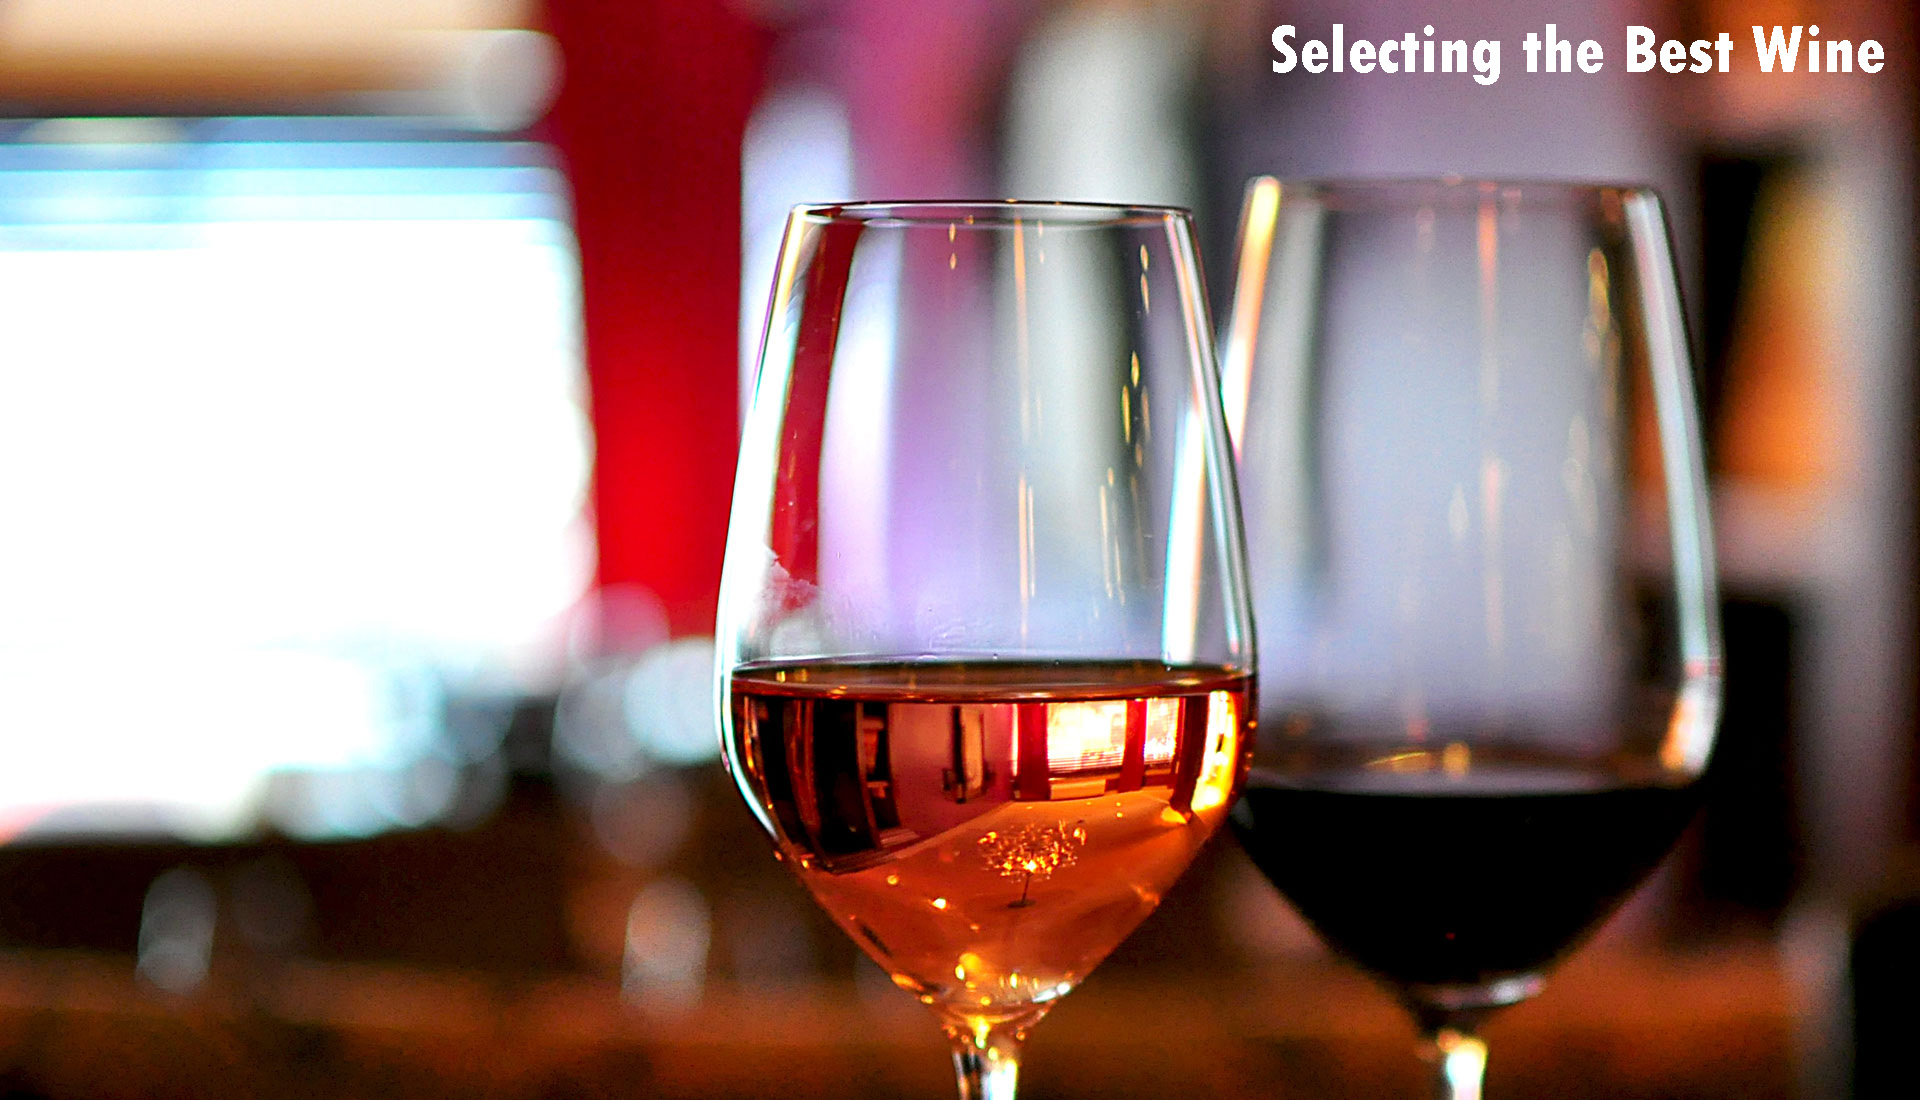 Just Like A Fine Wines Selecting the Best Wine_foodfeatures